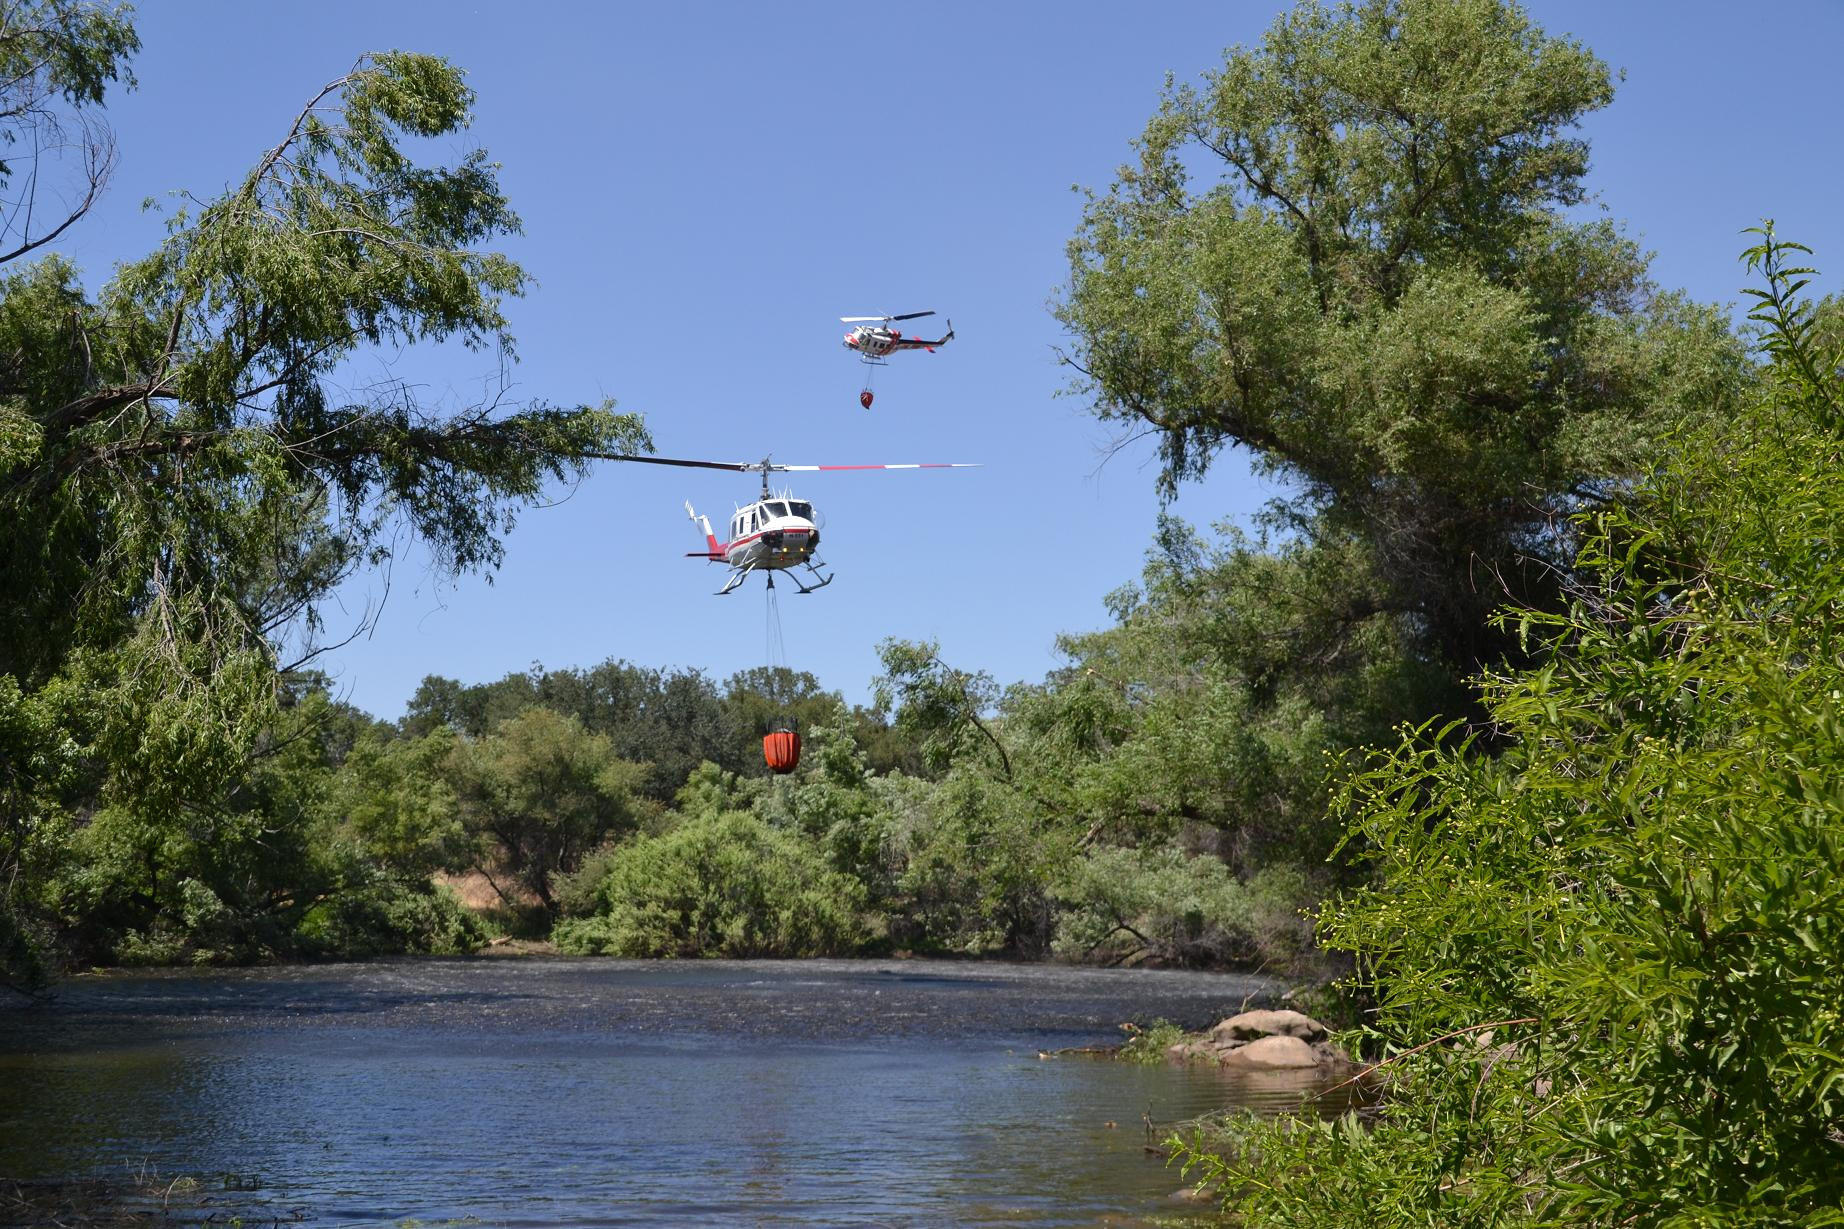 Helicopters tag teaming over the pond - Photo by Gina Clugston